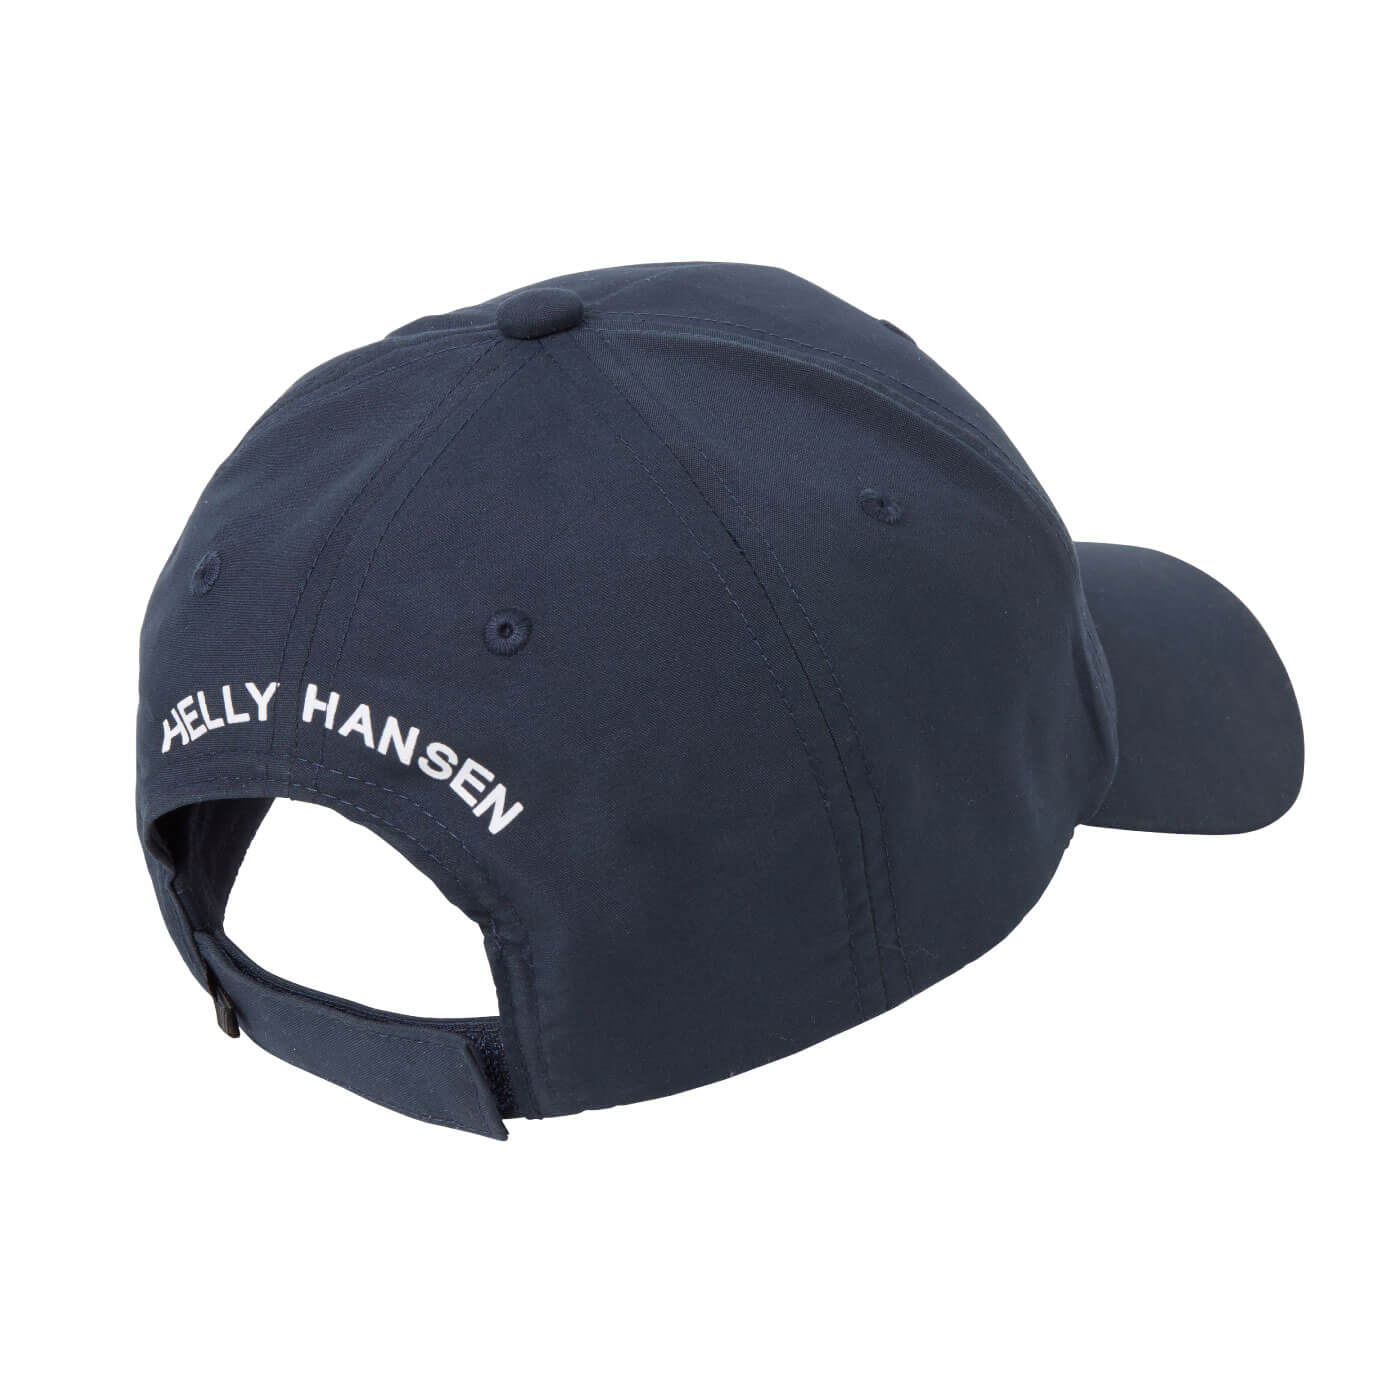 Helly Hansen Crew Cap 597 Navy Back